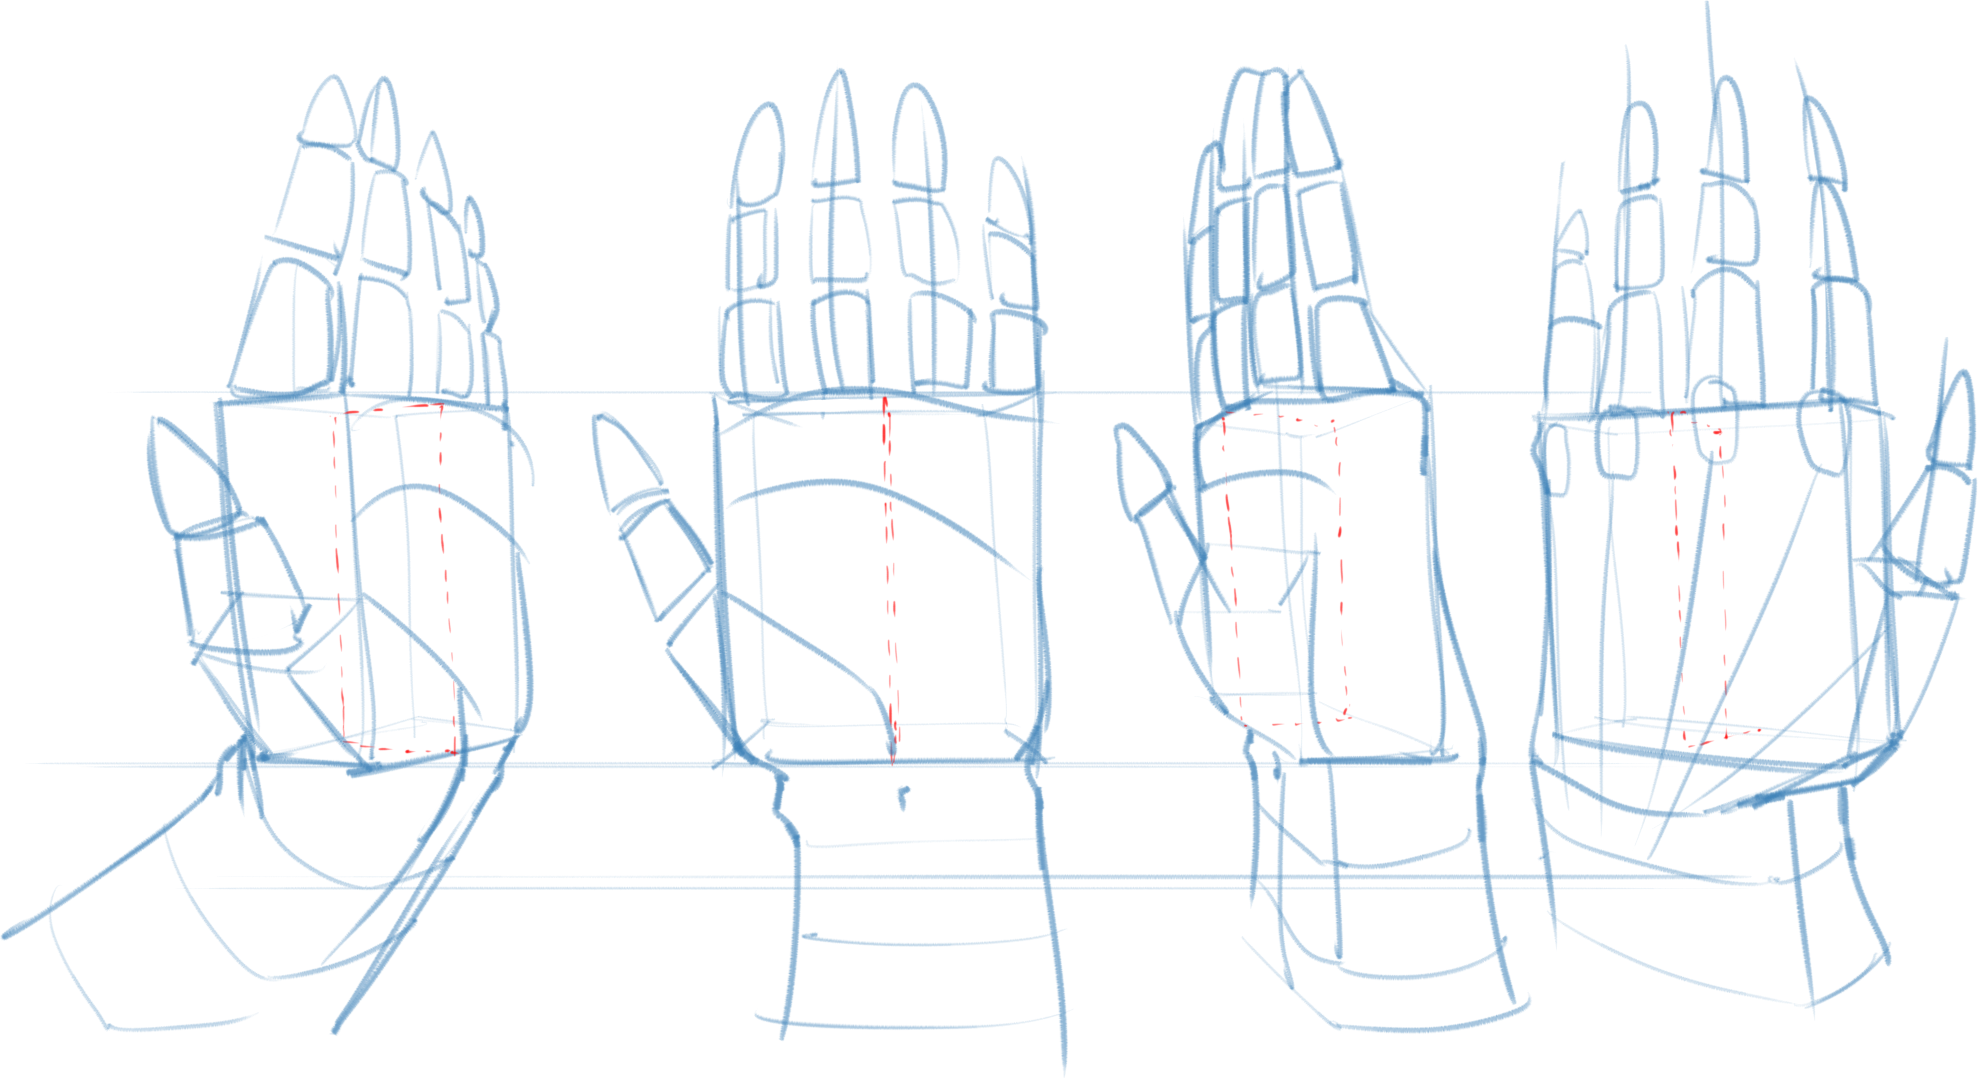 2 Ways To Draw Hands Anatomy Amp Forms